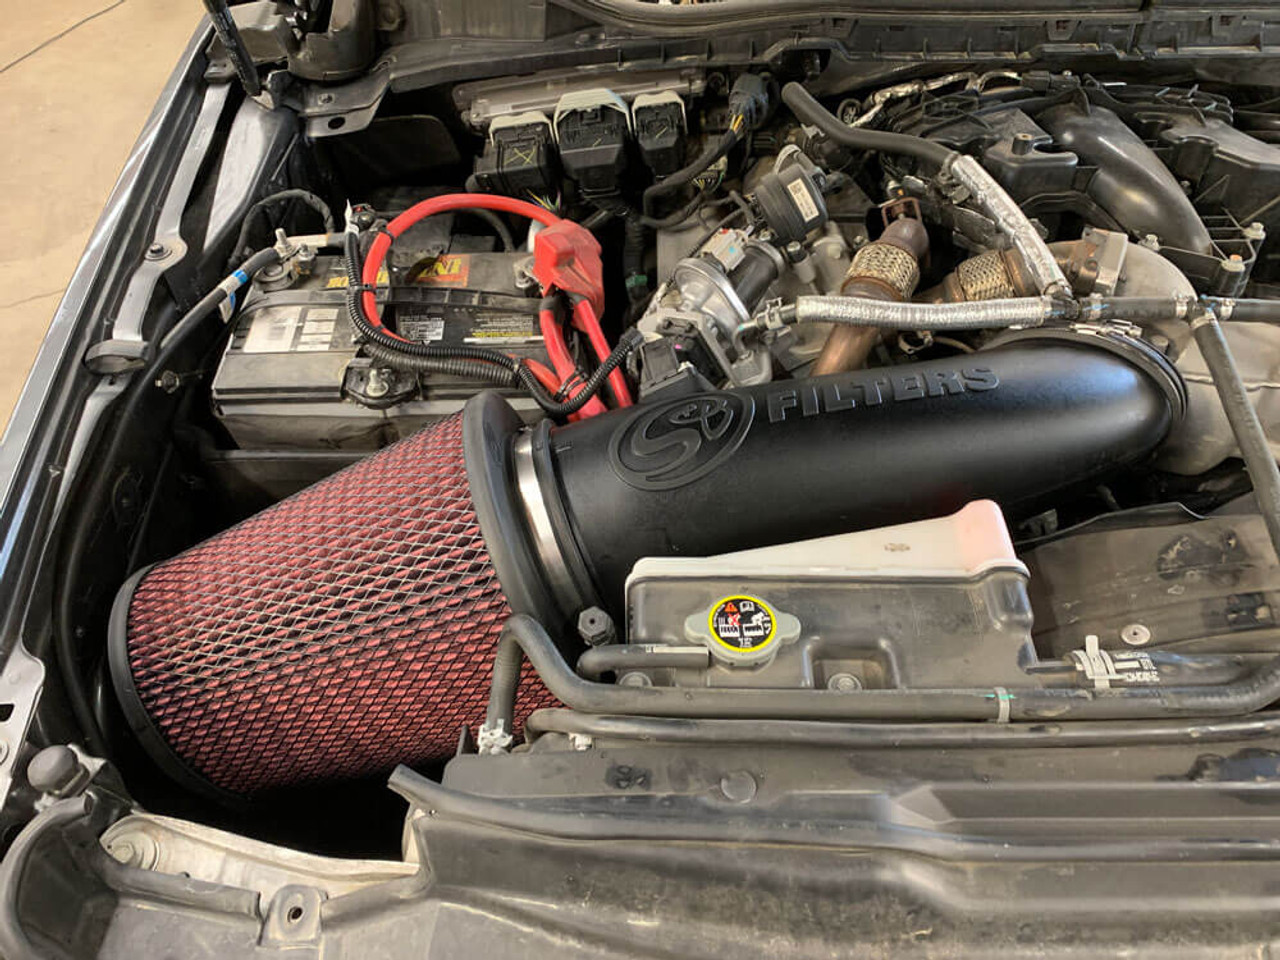 S&B 75-75-6001 Cold Air Intake For 17-19 Ford Powerstroke 6.7L